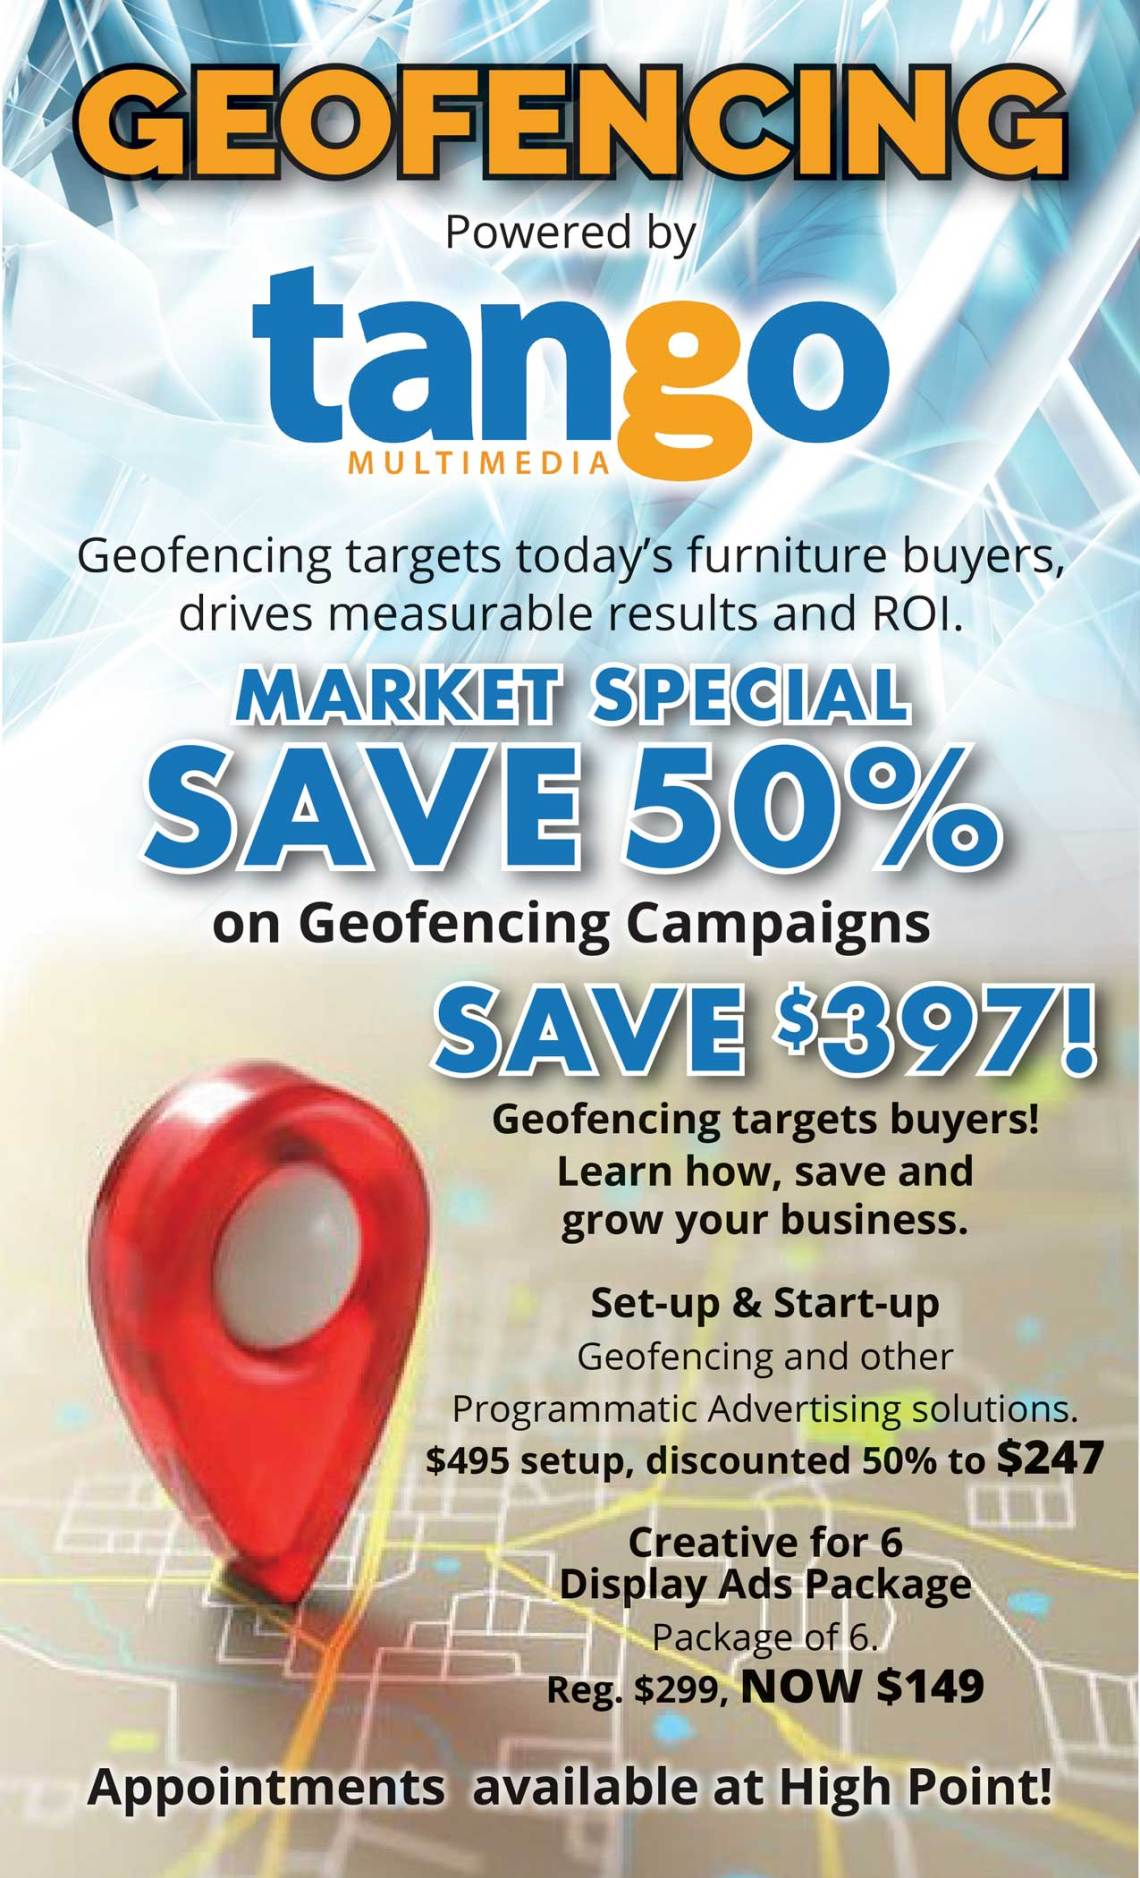 Geofencing powered by Tango Multimedia